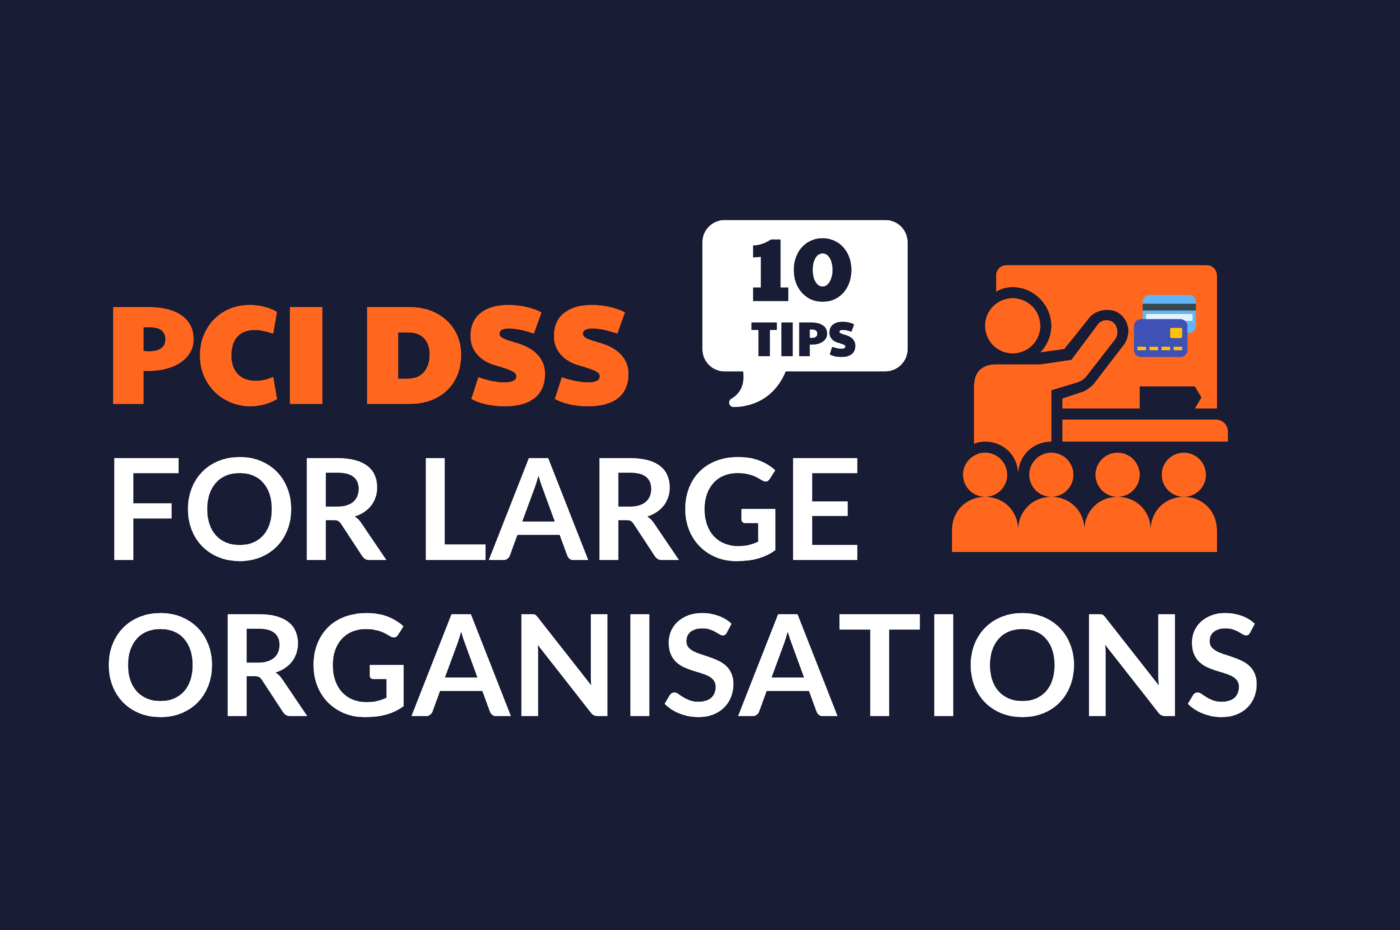 """Graphic text in images says PCI DSS for Large Organizations, with the words """"10 Tips"""" in a speech bubble. Smaller graphic beside text shows students in a class learning about payment cards."""